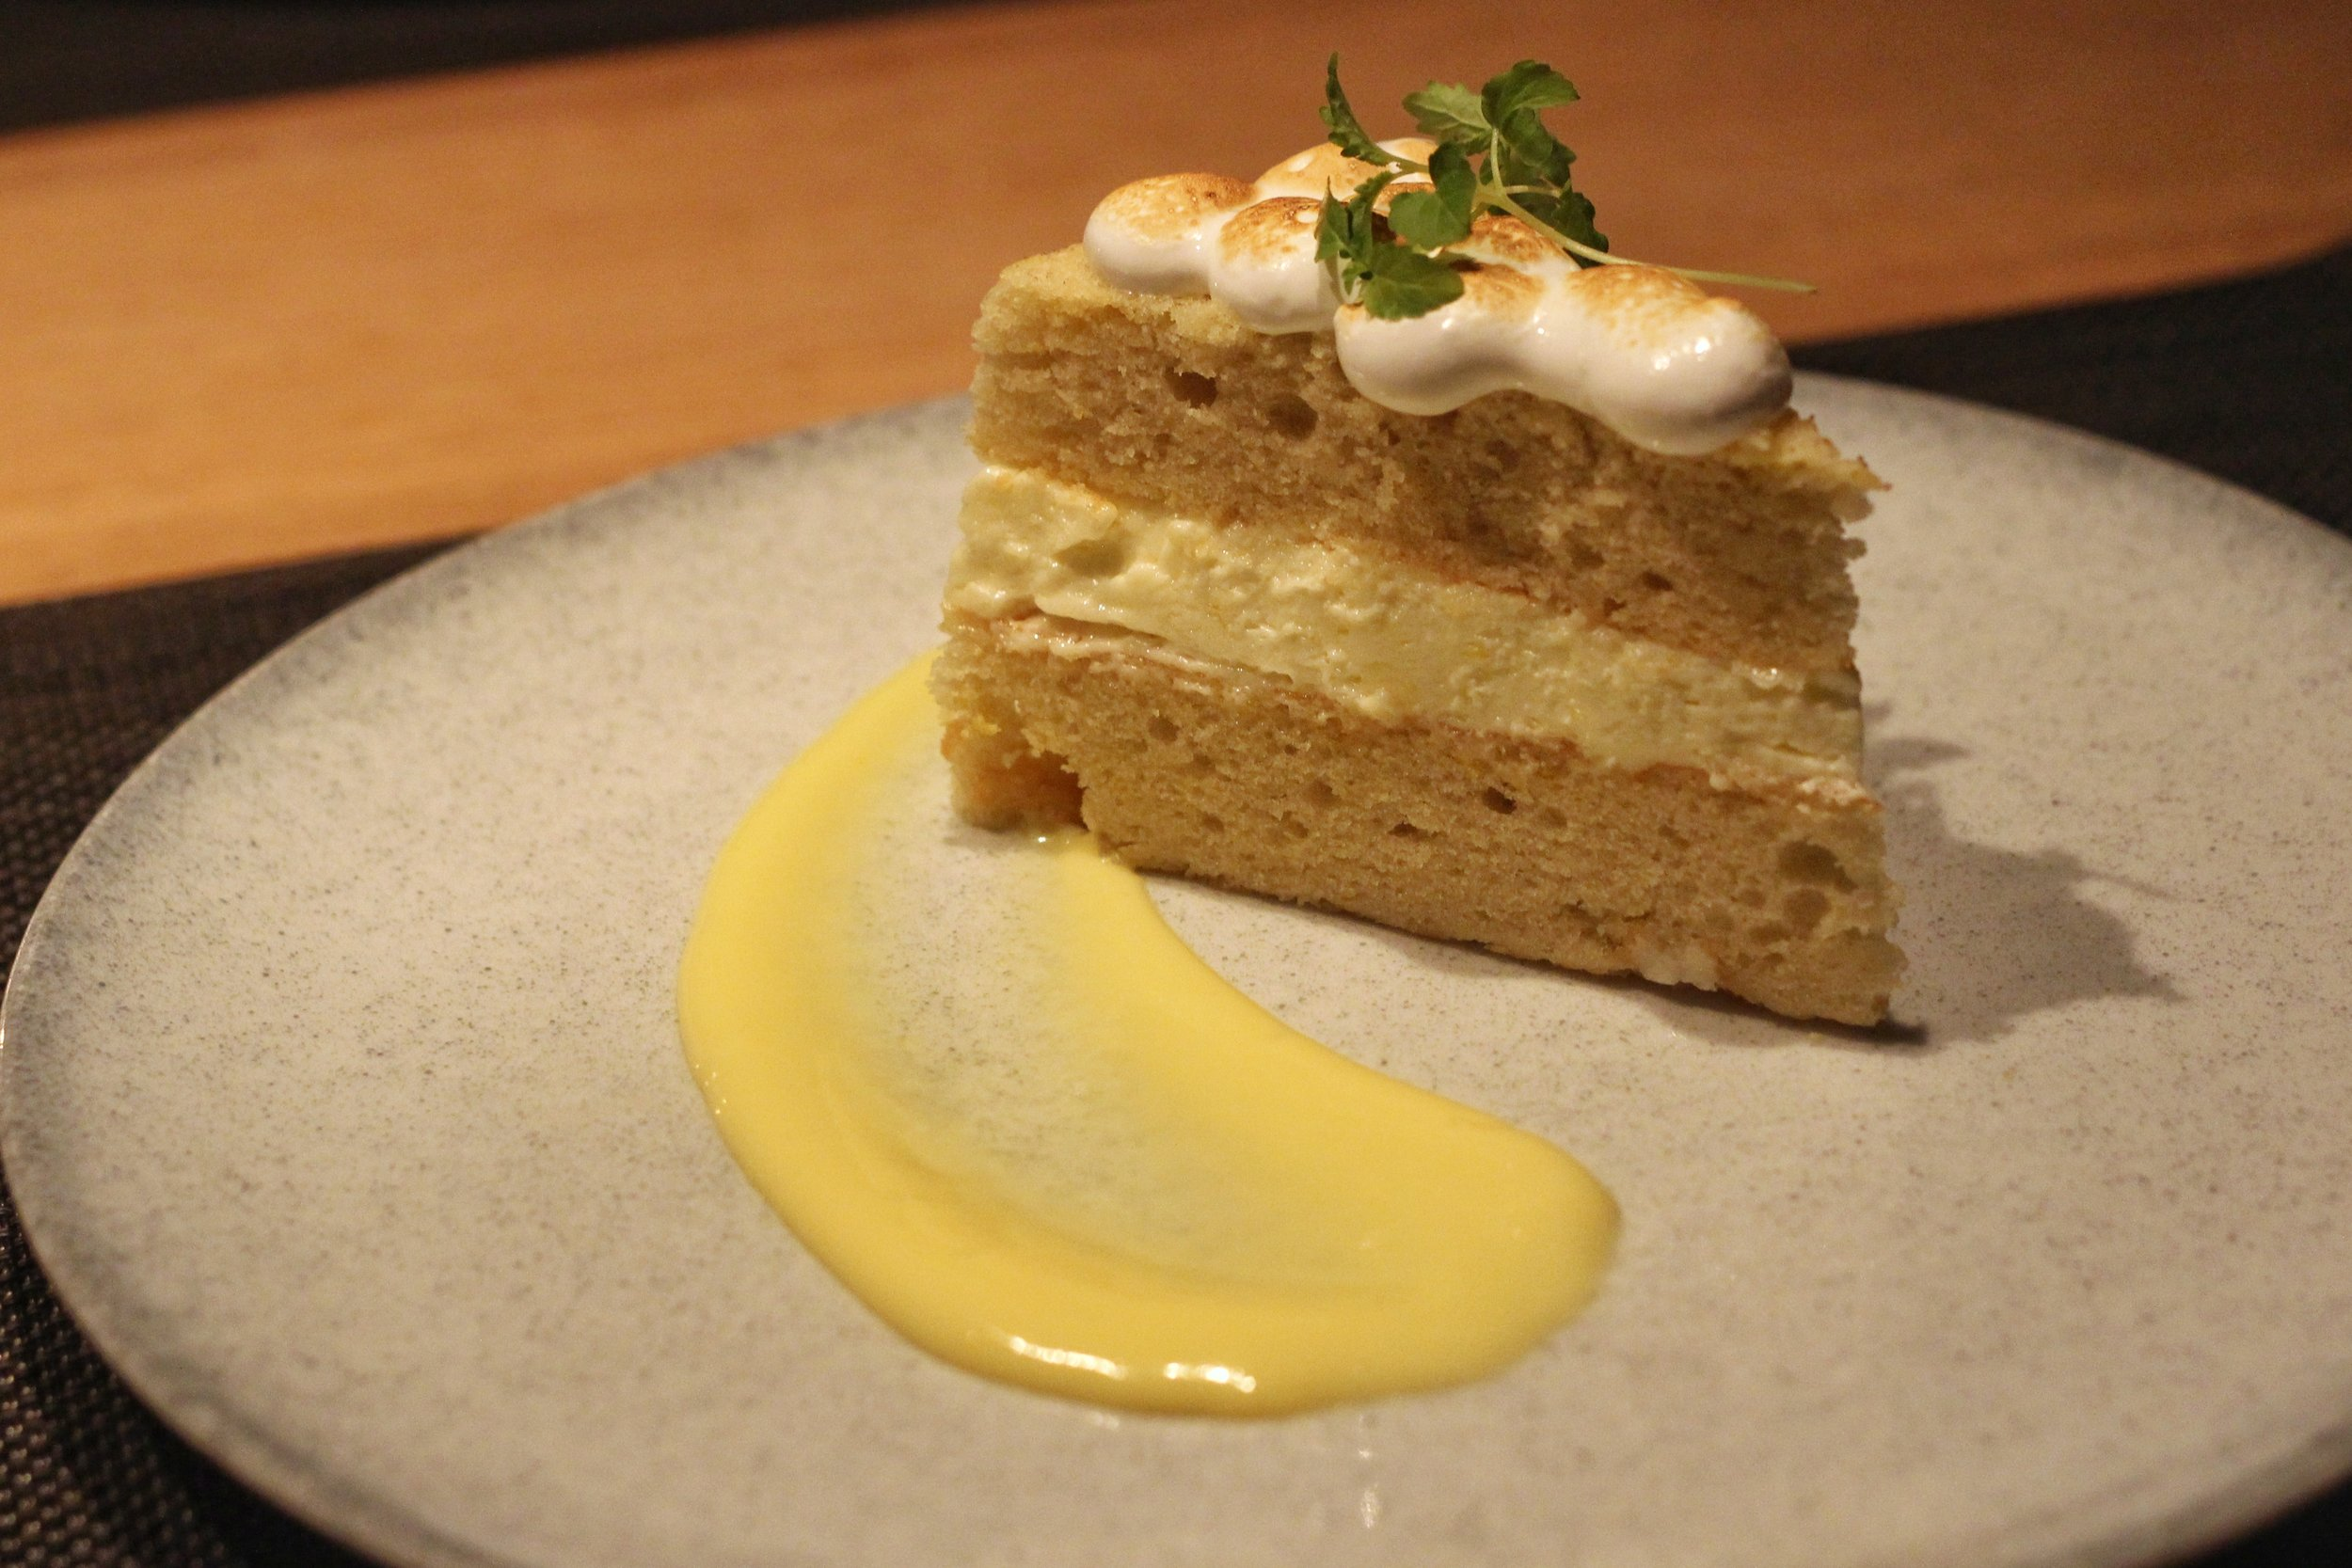 Lemon Meringue Cake  - lemon curd, lemon sponge cake, toasted meringue